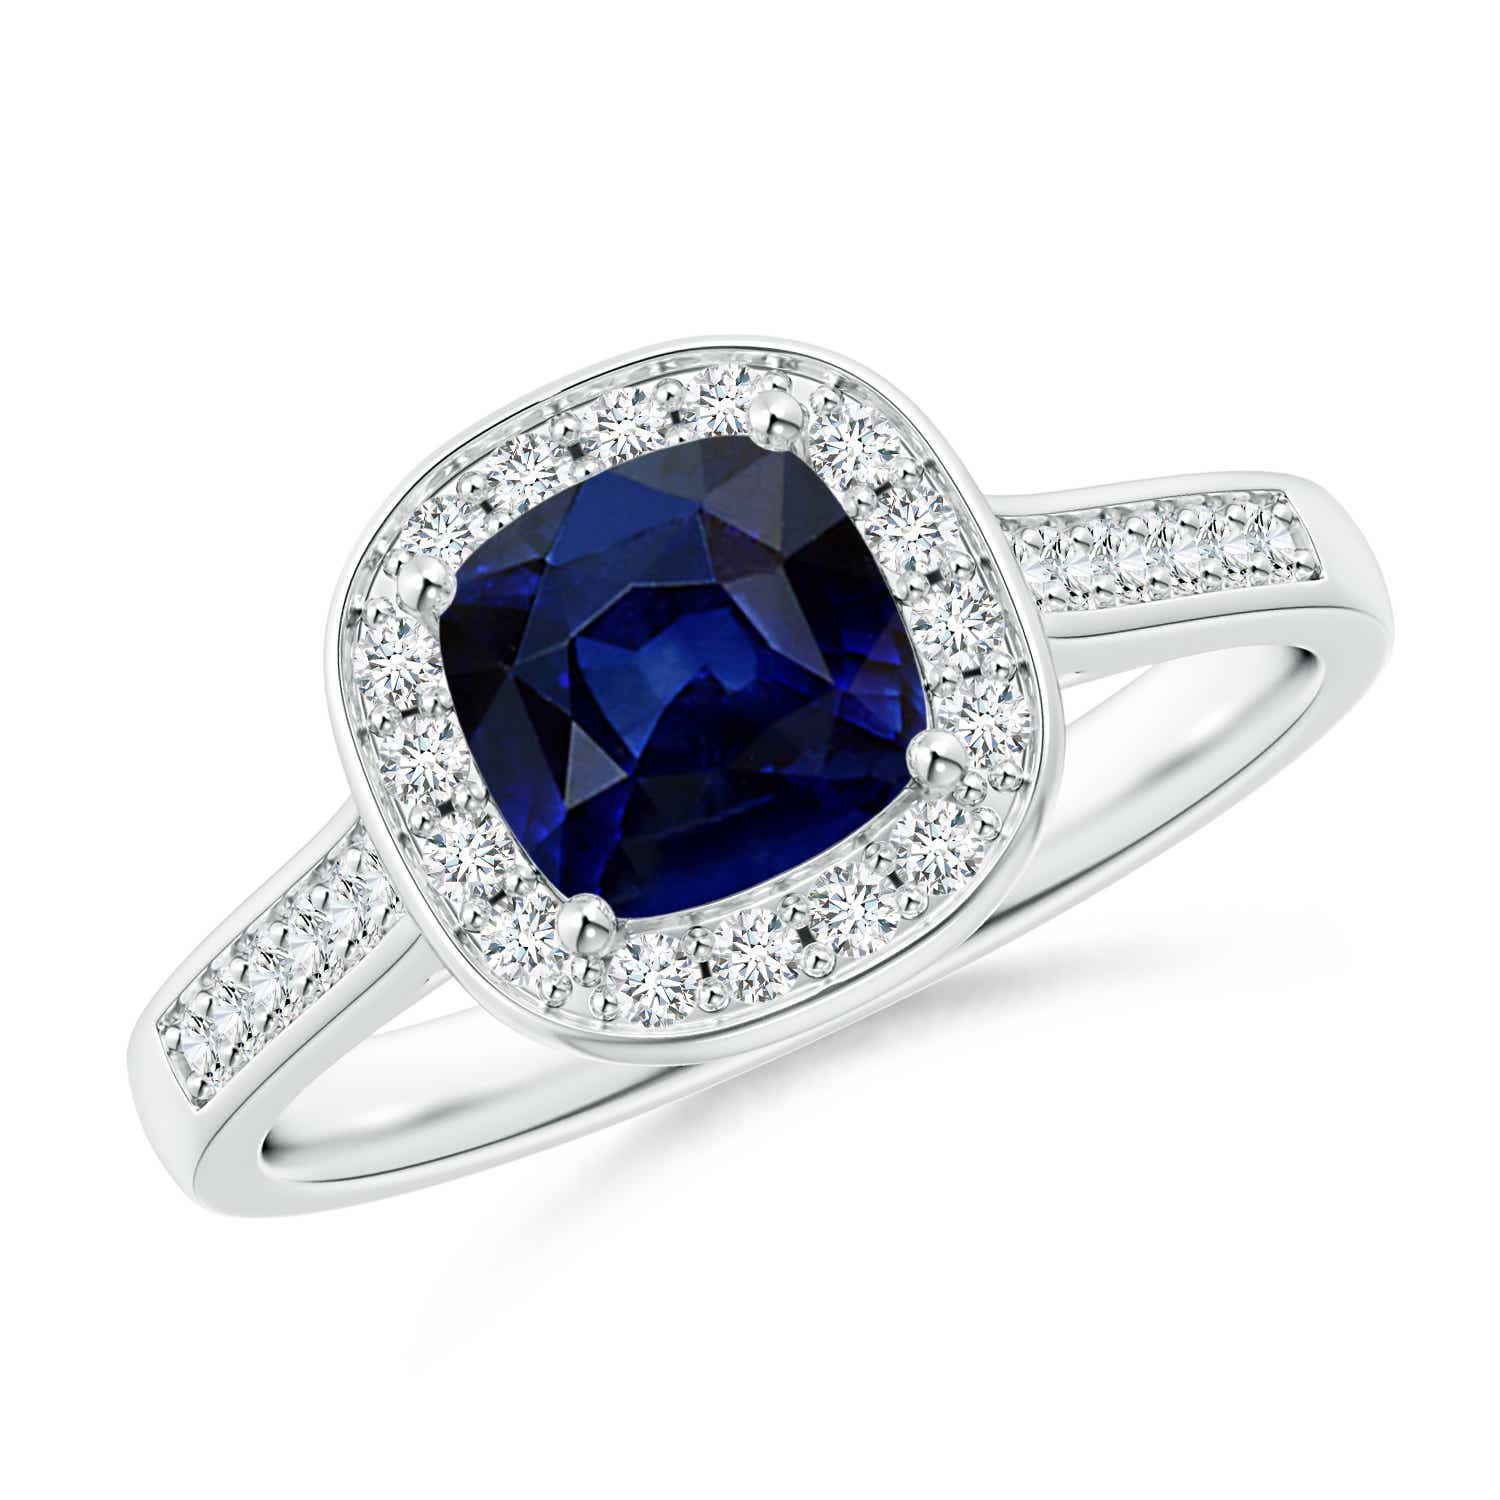 Angara Solitaire Cushion Sapphire Vintage Engagement Ring DkNFy12